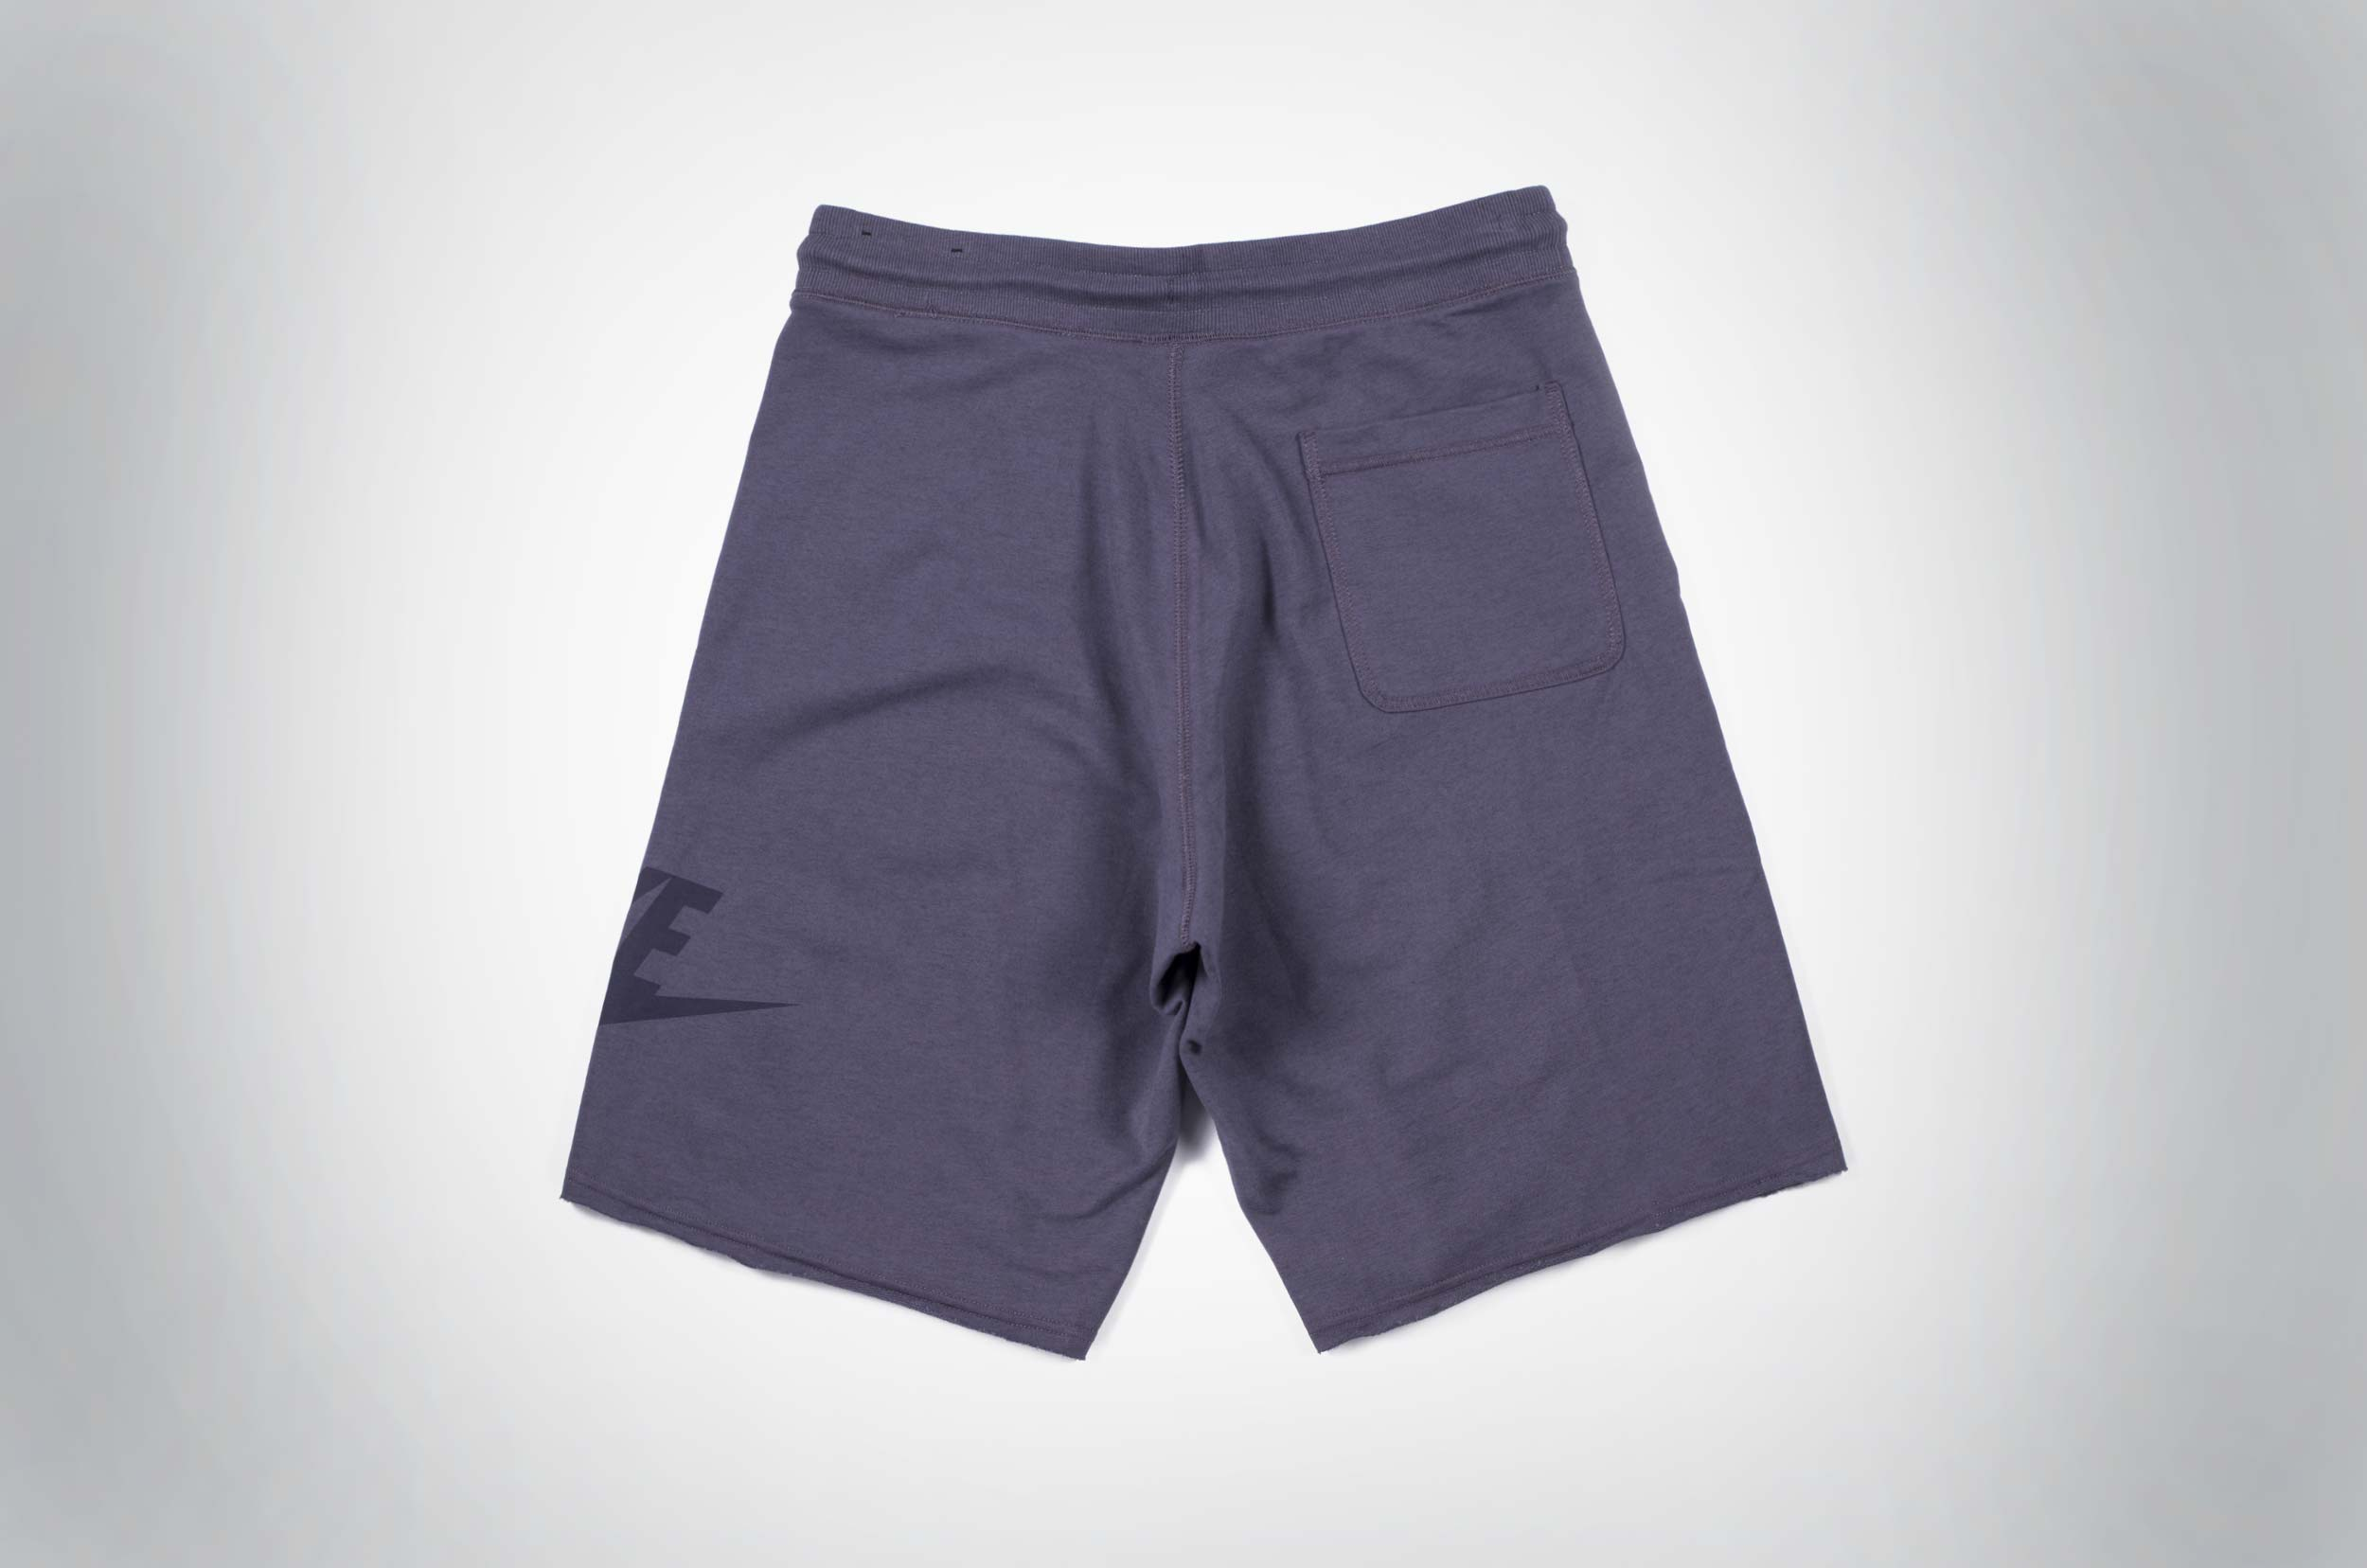 ... NIKE M NSW SHORT FT 833959-539 Μωβ ... 5d70fd87385